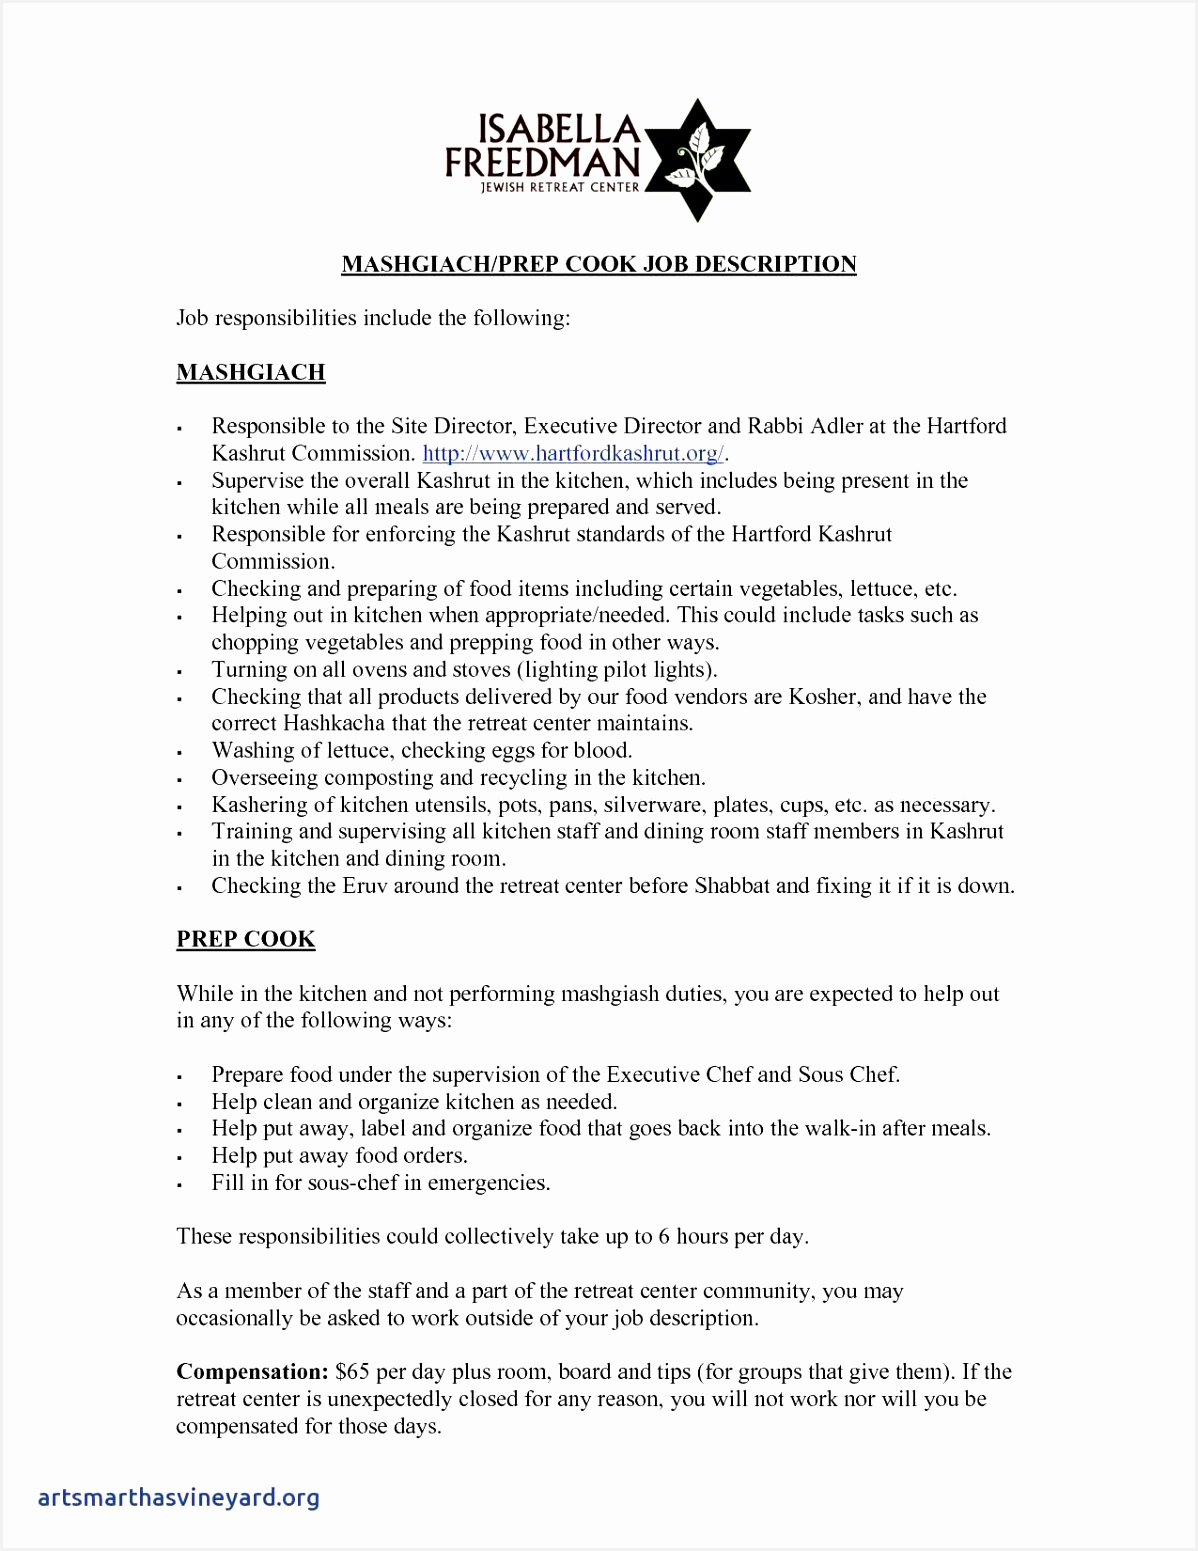 What to Put In A Resume Cover Letter C7mkg Inspirational Cover Letter Template Doc Collection Of What to Put In A Resume Cover Letter Ebkab Unique Cover Letter for Resume Sample for Fresh Graduate New Job Apply